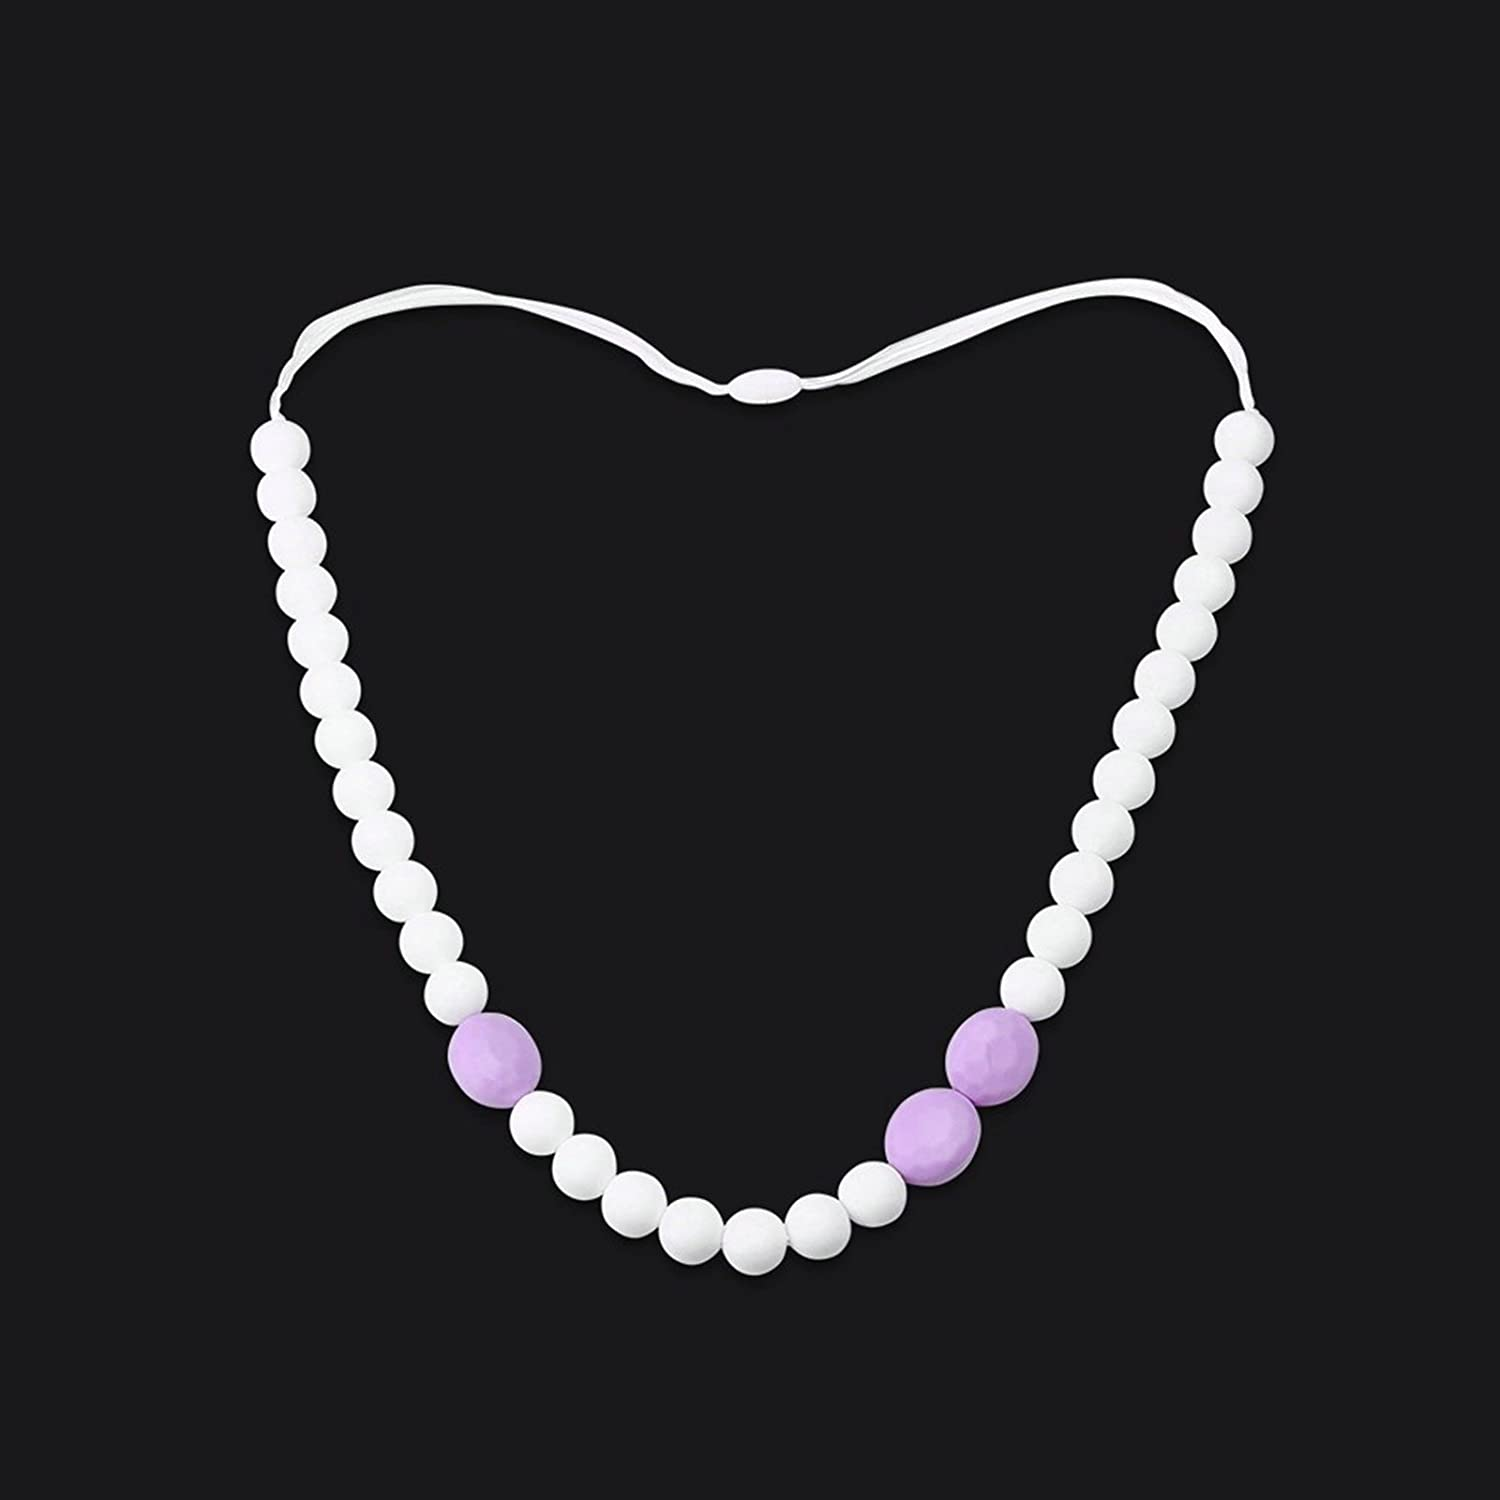 80CM KnSam Silicone Teething Necklace for Women and Baby Ball Connection Purple White Chain Length